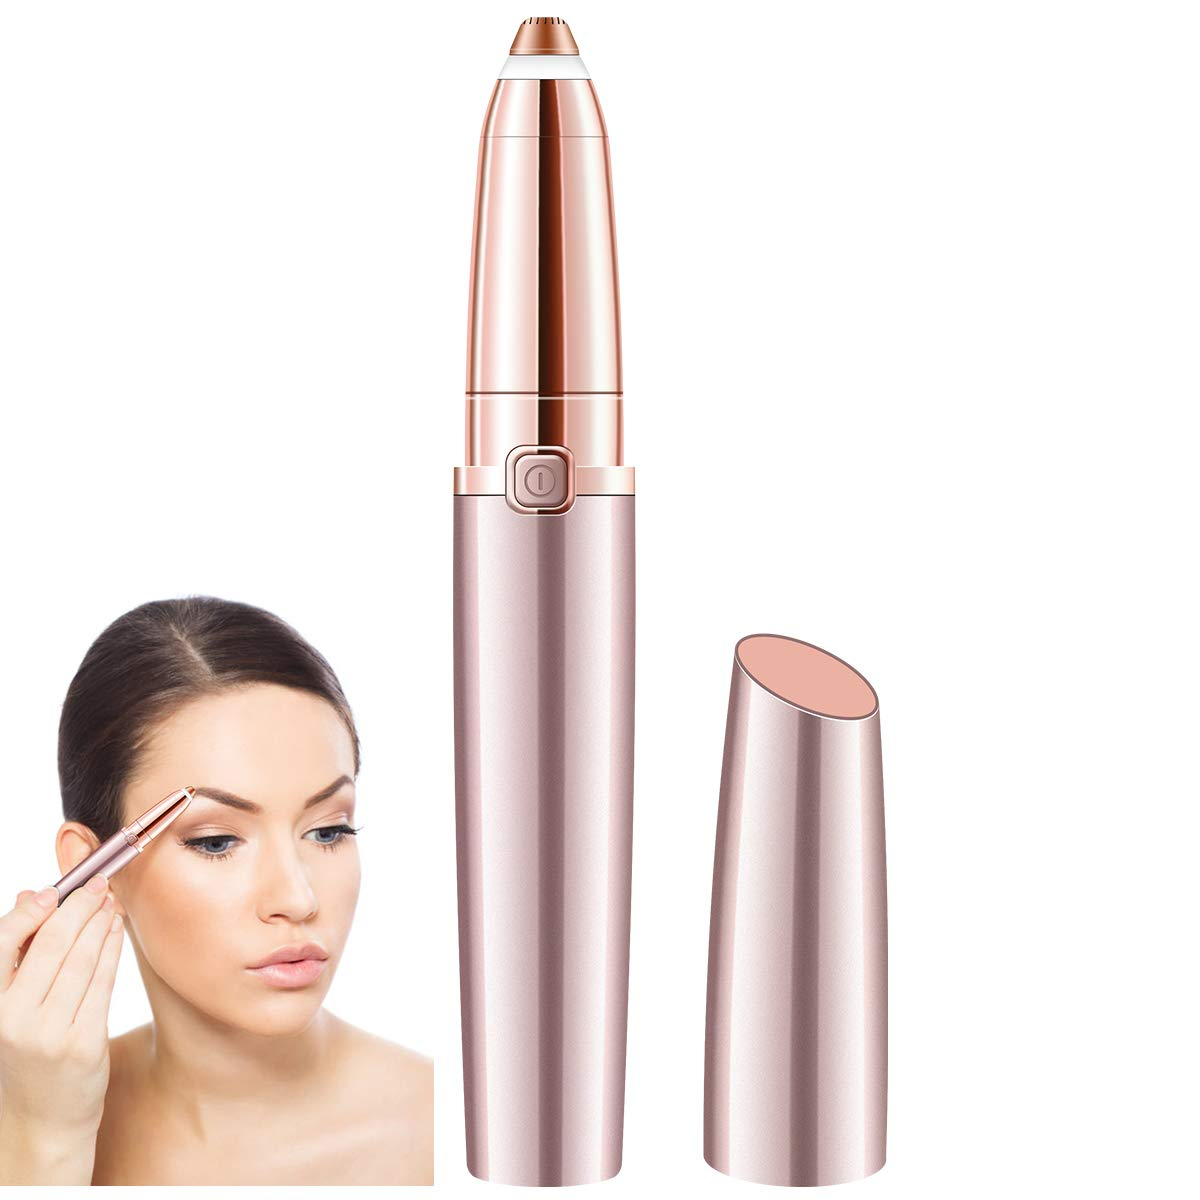 SHINCO Painless Eyebrow Hair Remover for Women,Portable Eyebrow Trimmer Razor with LED Light,Lipstick-Sized Eye brow Epilator,Facial Hair Shaver For Good Finishing (Rose Gold)